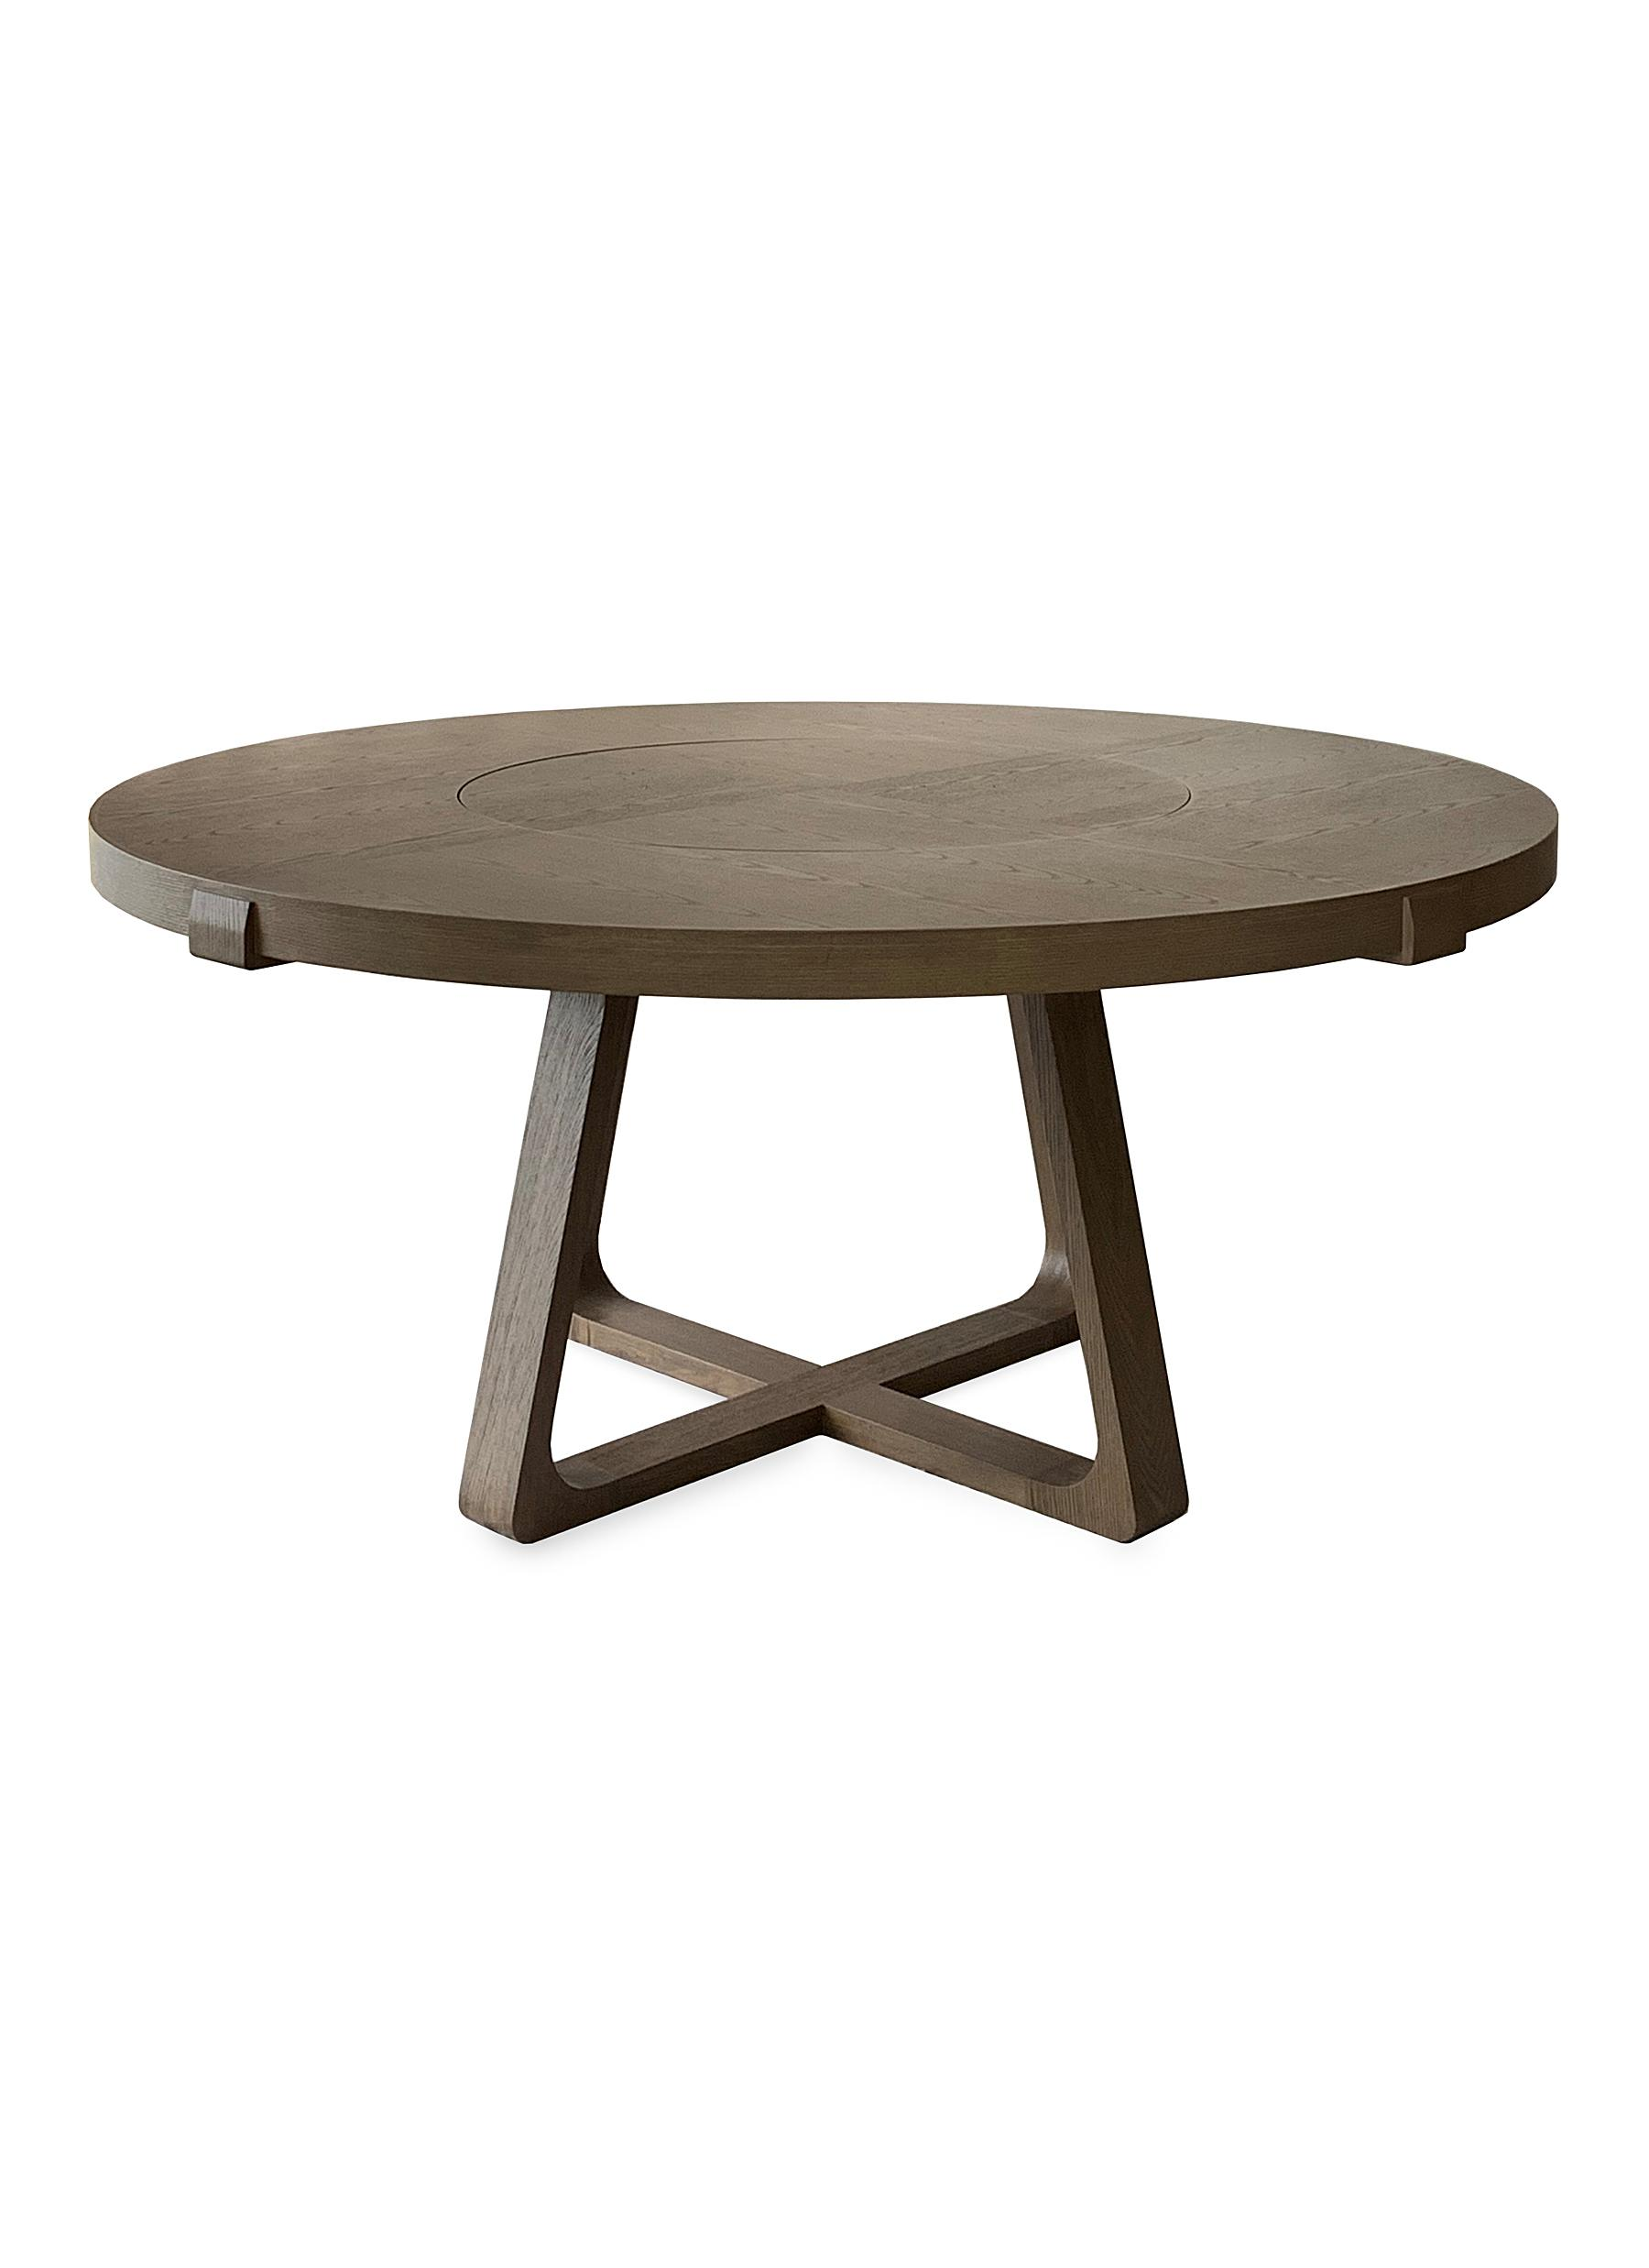 André Fu Living. Lazy Susan oak round dining table 02f3cdfa8